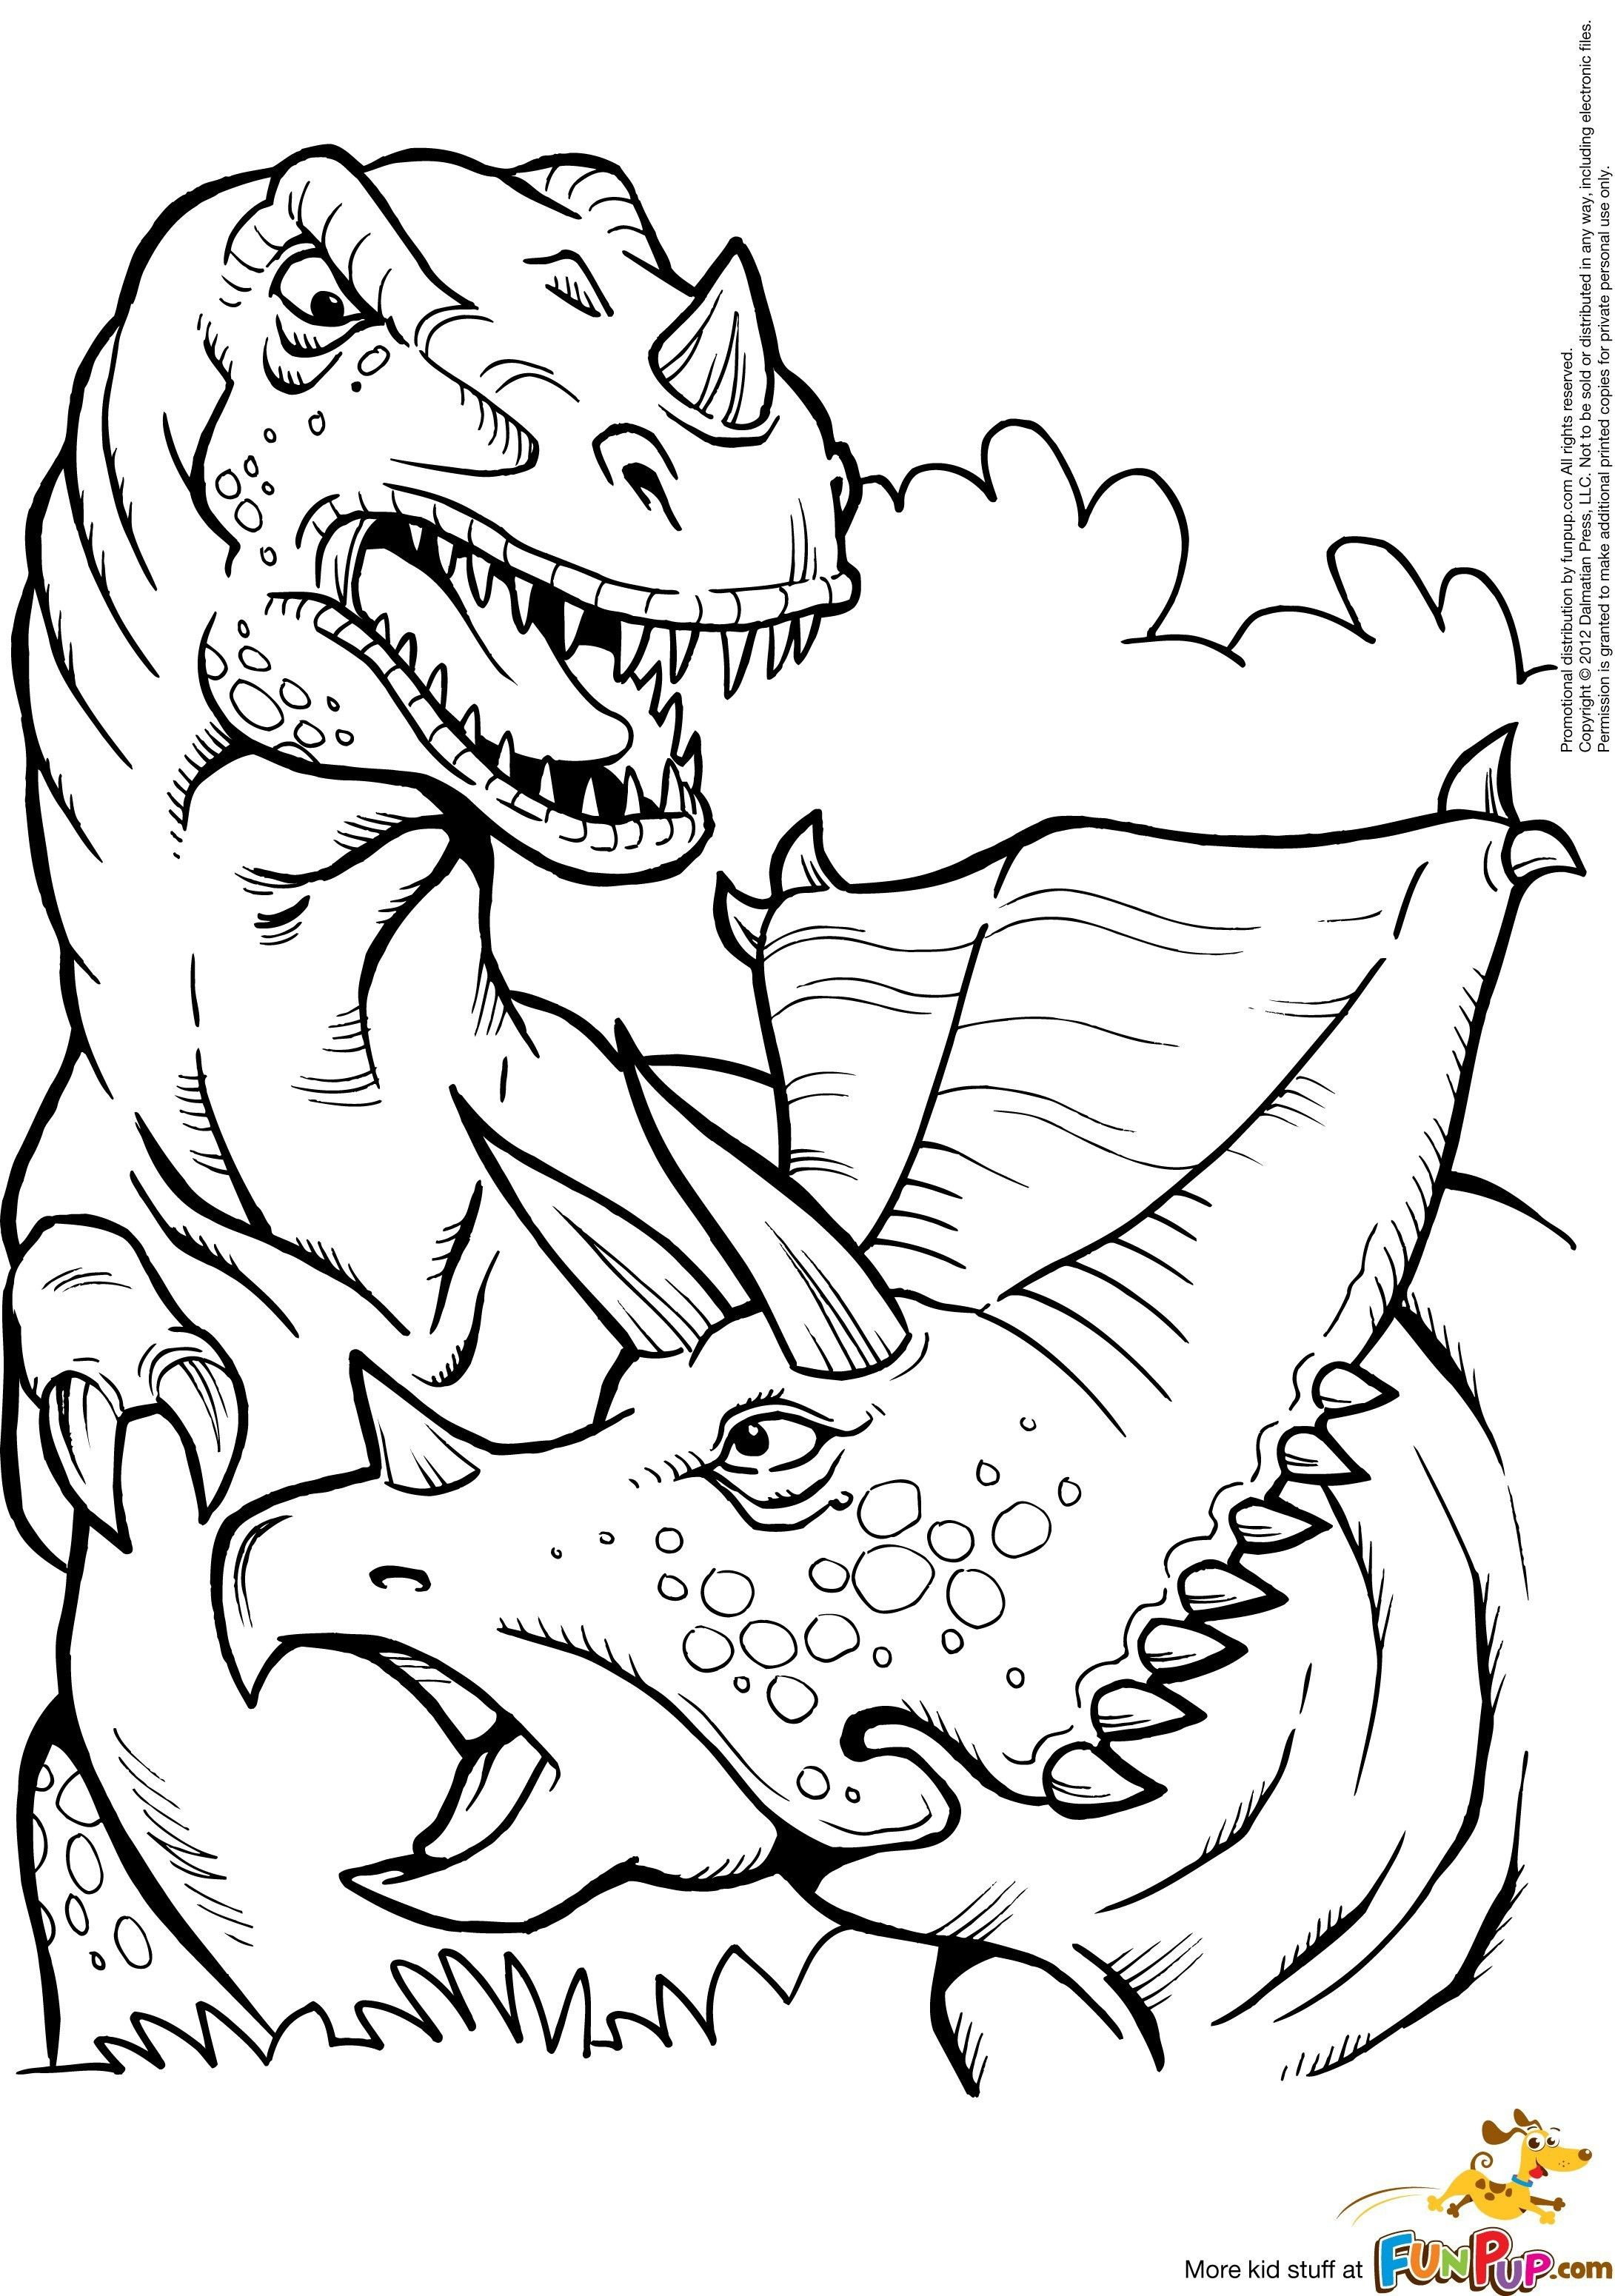 Dinosaurs Coloring Pages Dinosaur Coloring Pages Dinosaur Coloring Sheets Dragon Coloring Page